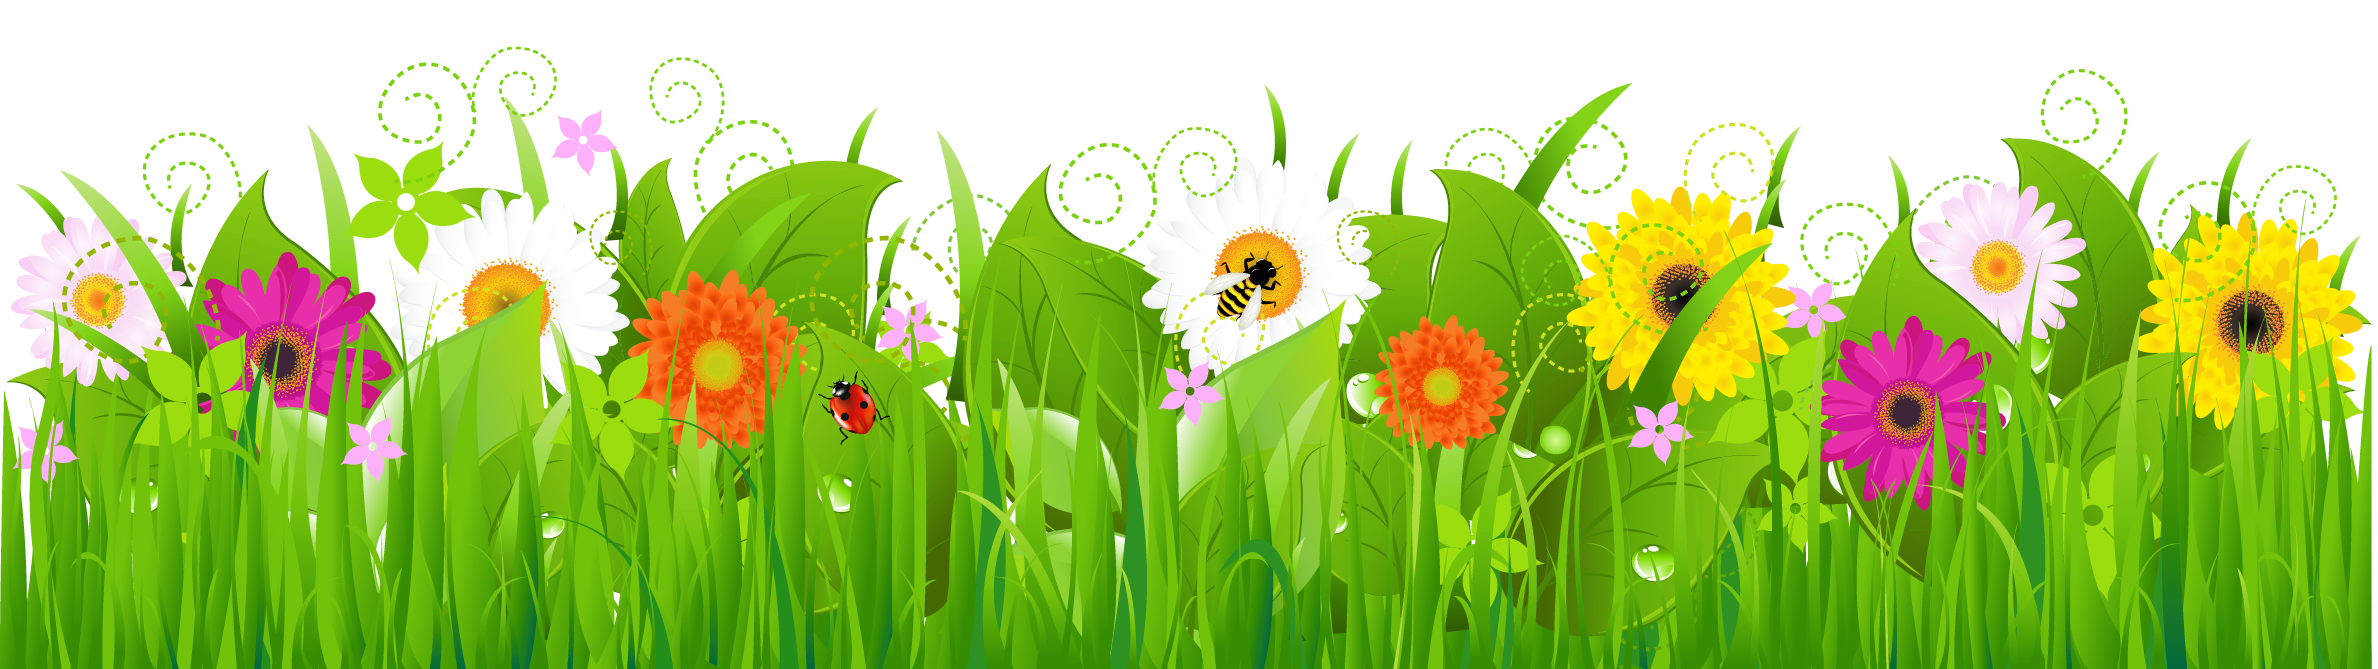 Gallery clipart bee flower Tags: and Gallery Grass PNG